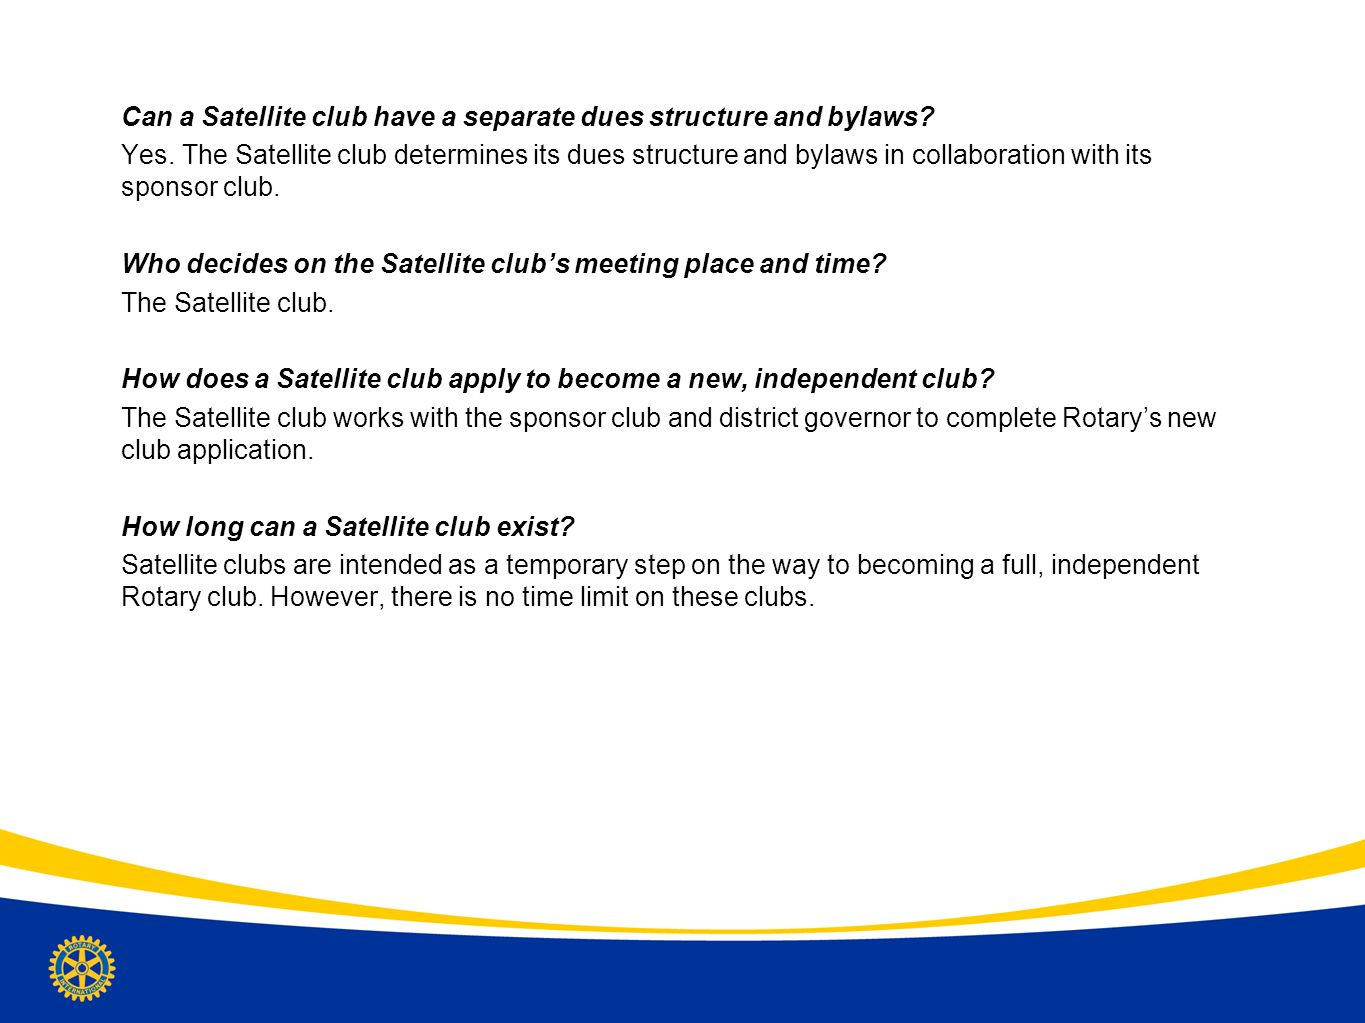 Can a Satellite club have a separate dues structure and bylaws